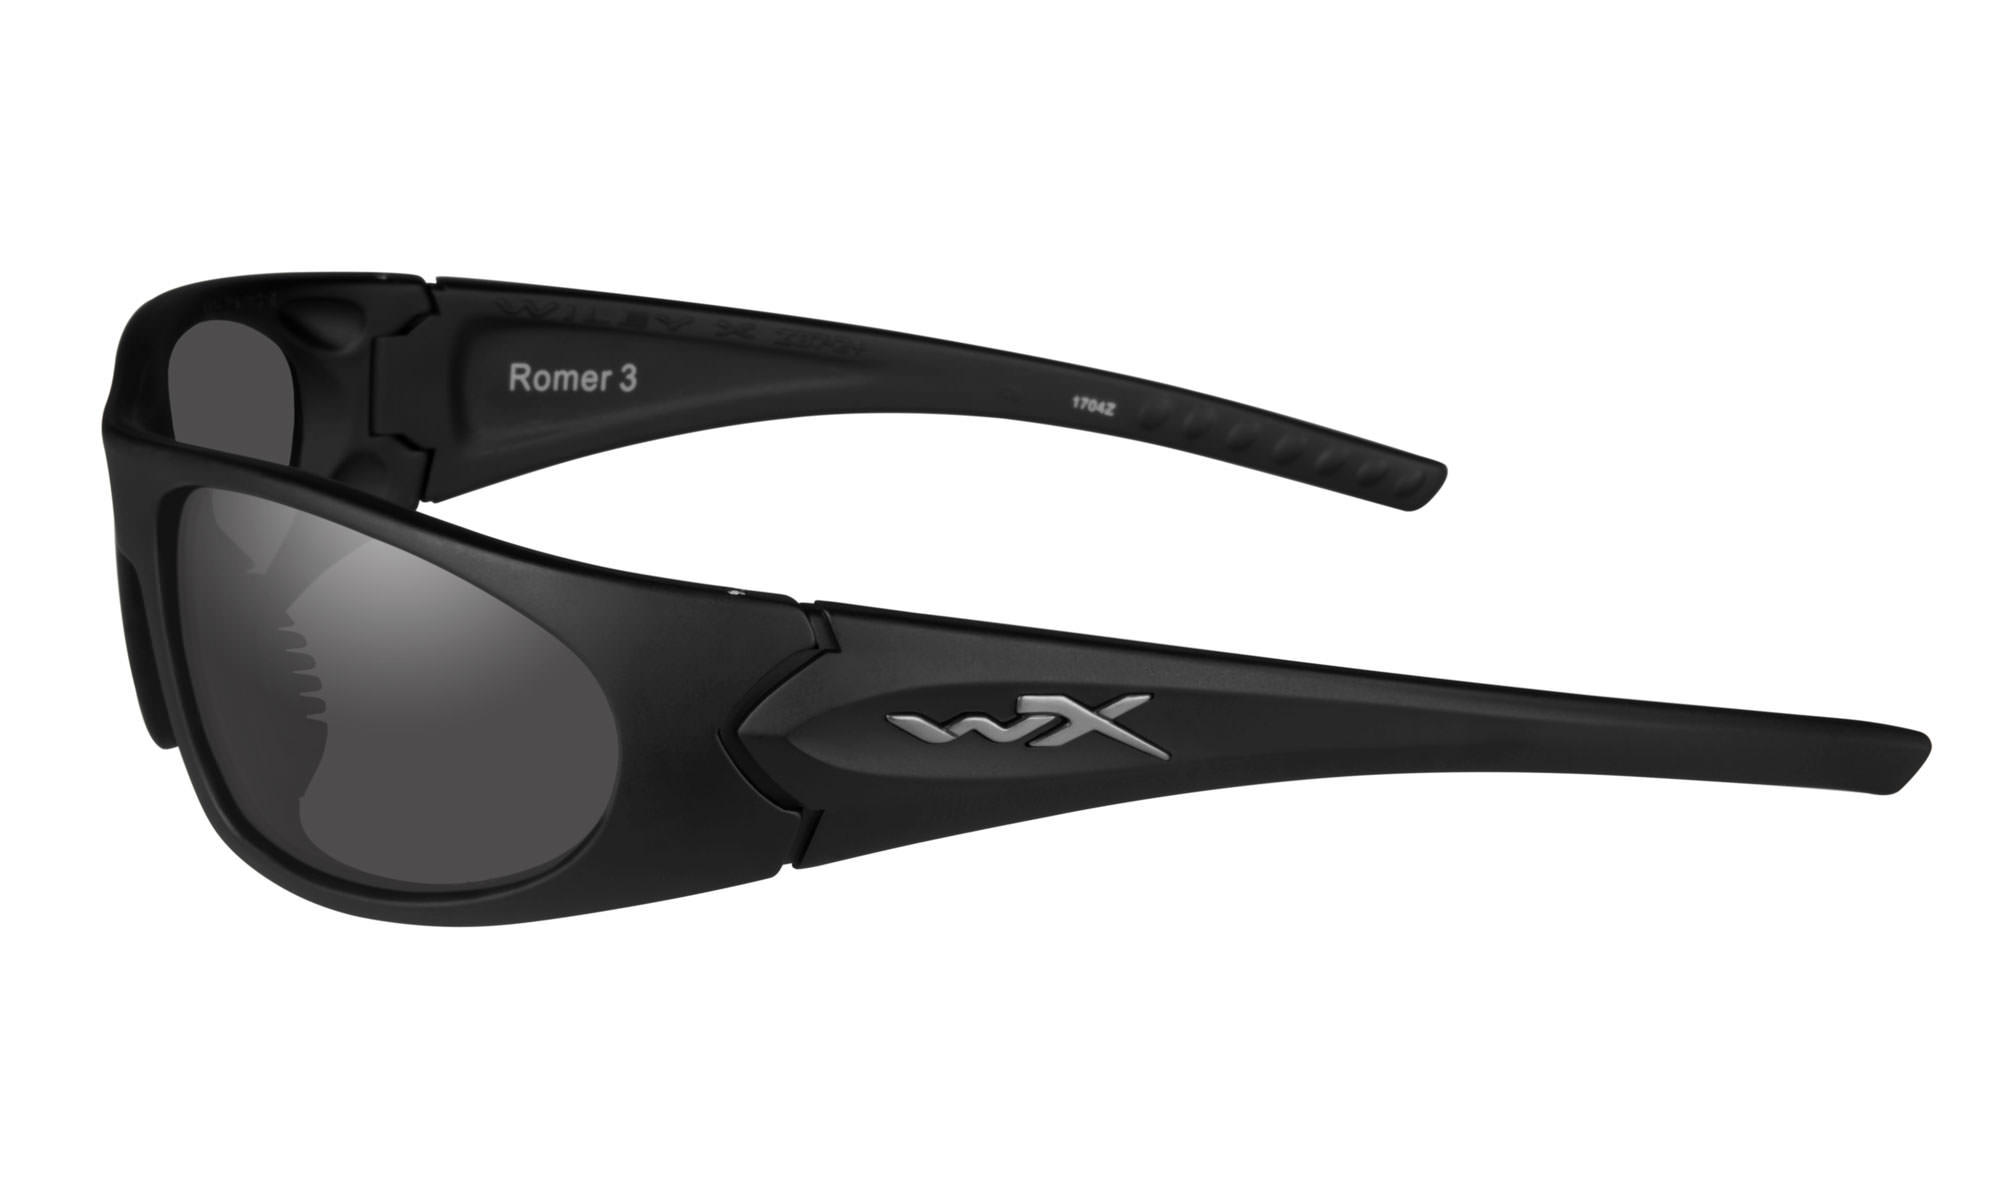 51ea587dd7dd Wiley-X Romer 3Polarized Lenses - Smoke Grey,Clear Wiley X